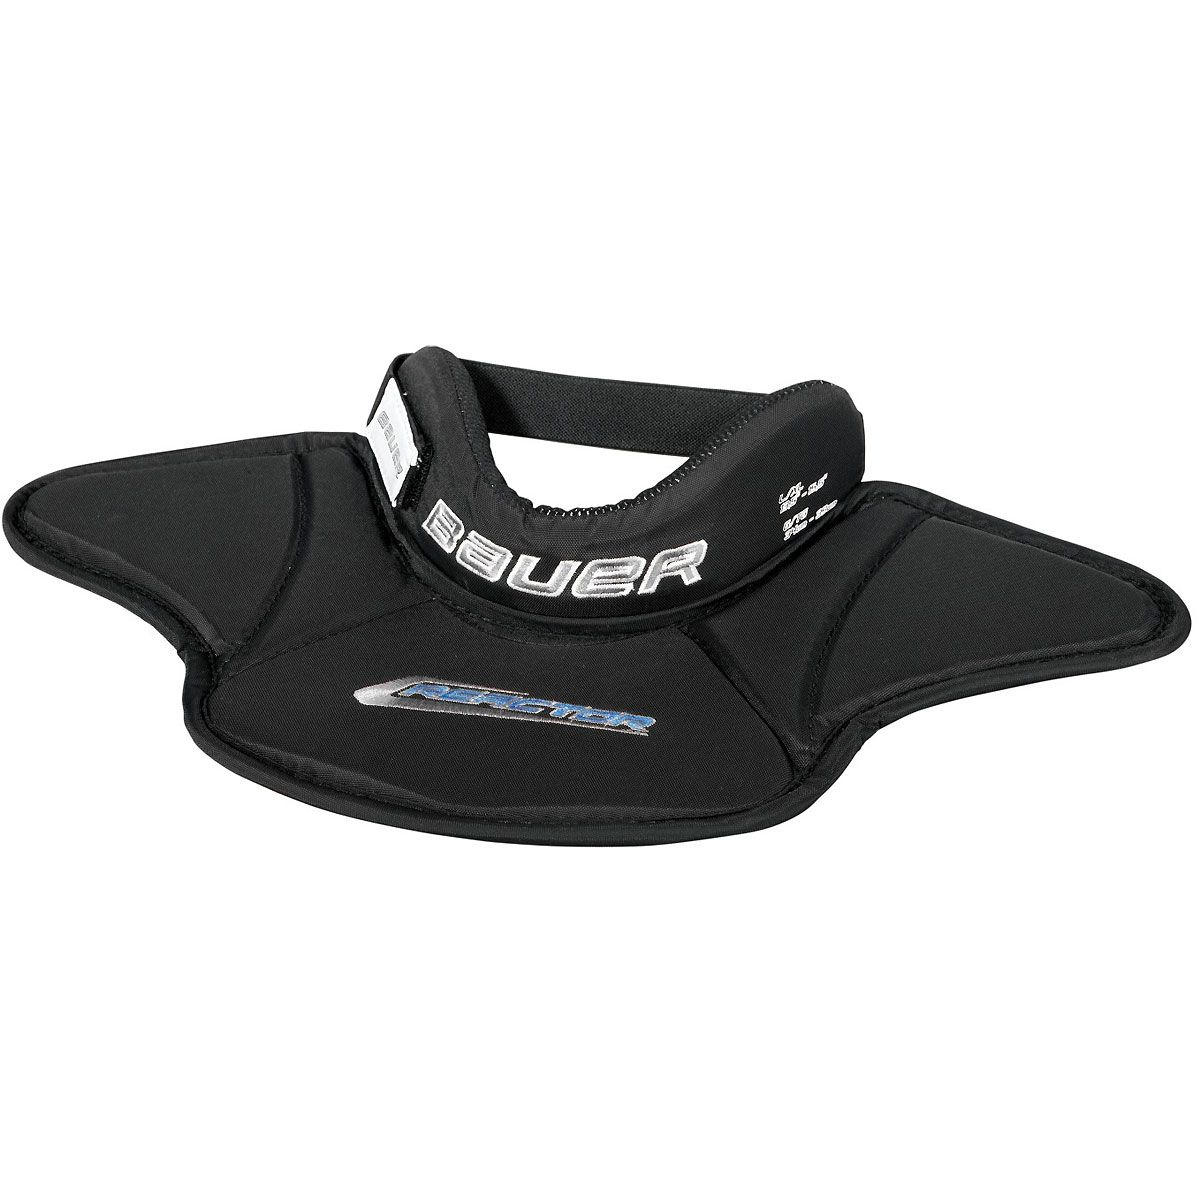 ЗАЩИТА ШЕИ ВРАТАРЯ BAUER REACTOR CLAVICLE PROTECTOR SR